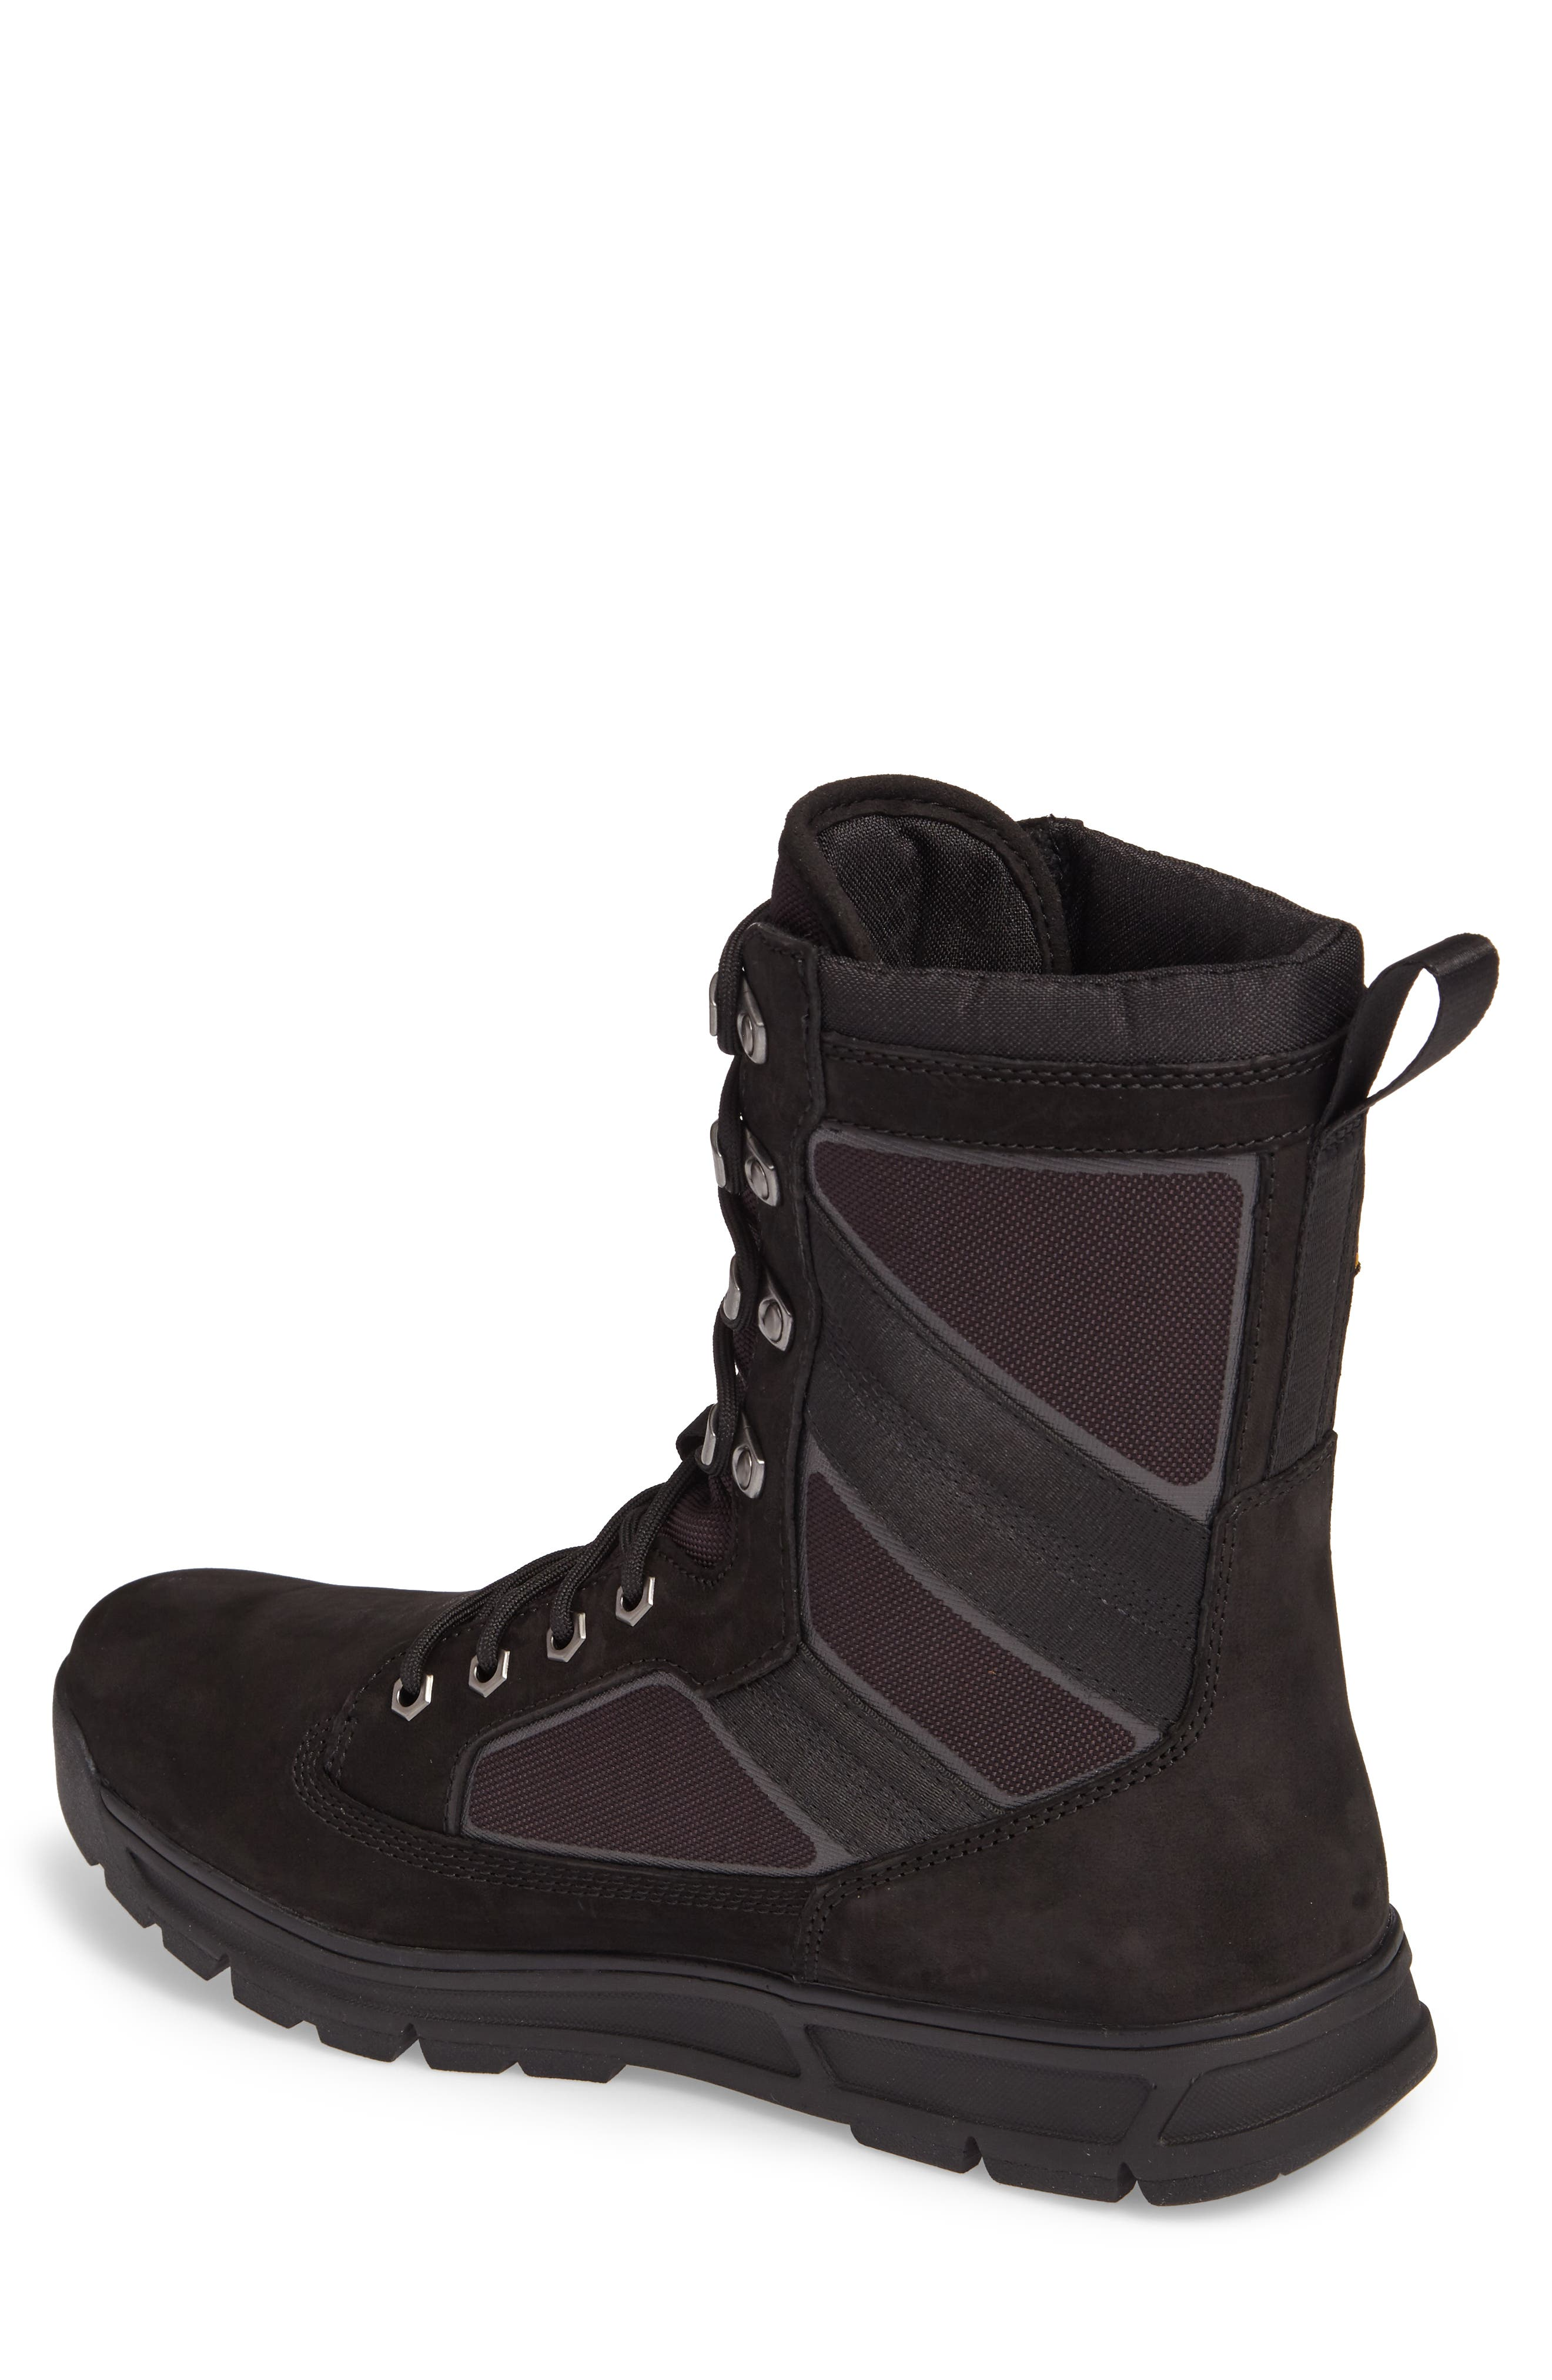 Field Guide Boot,                             Alternate thumbnail 2, color,                             BLACK LEATHER